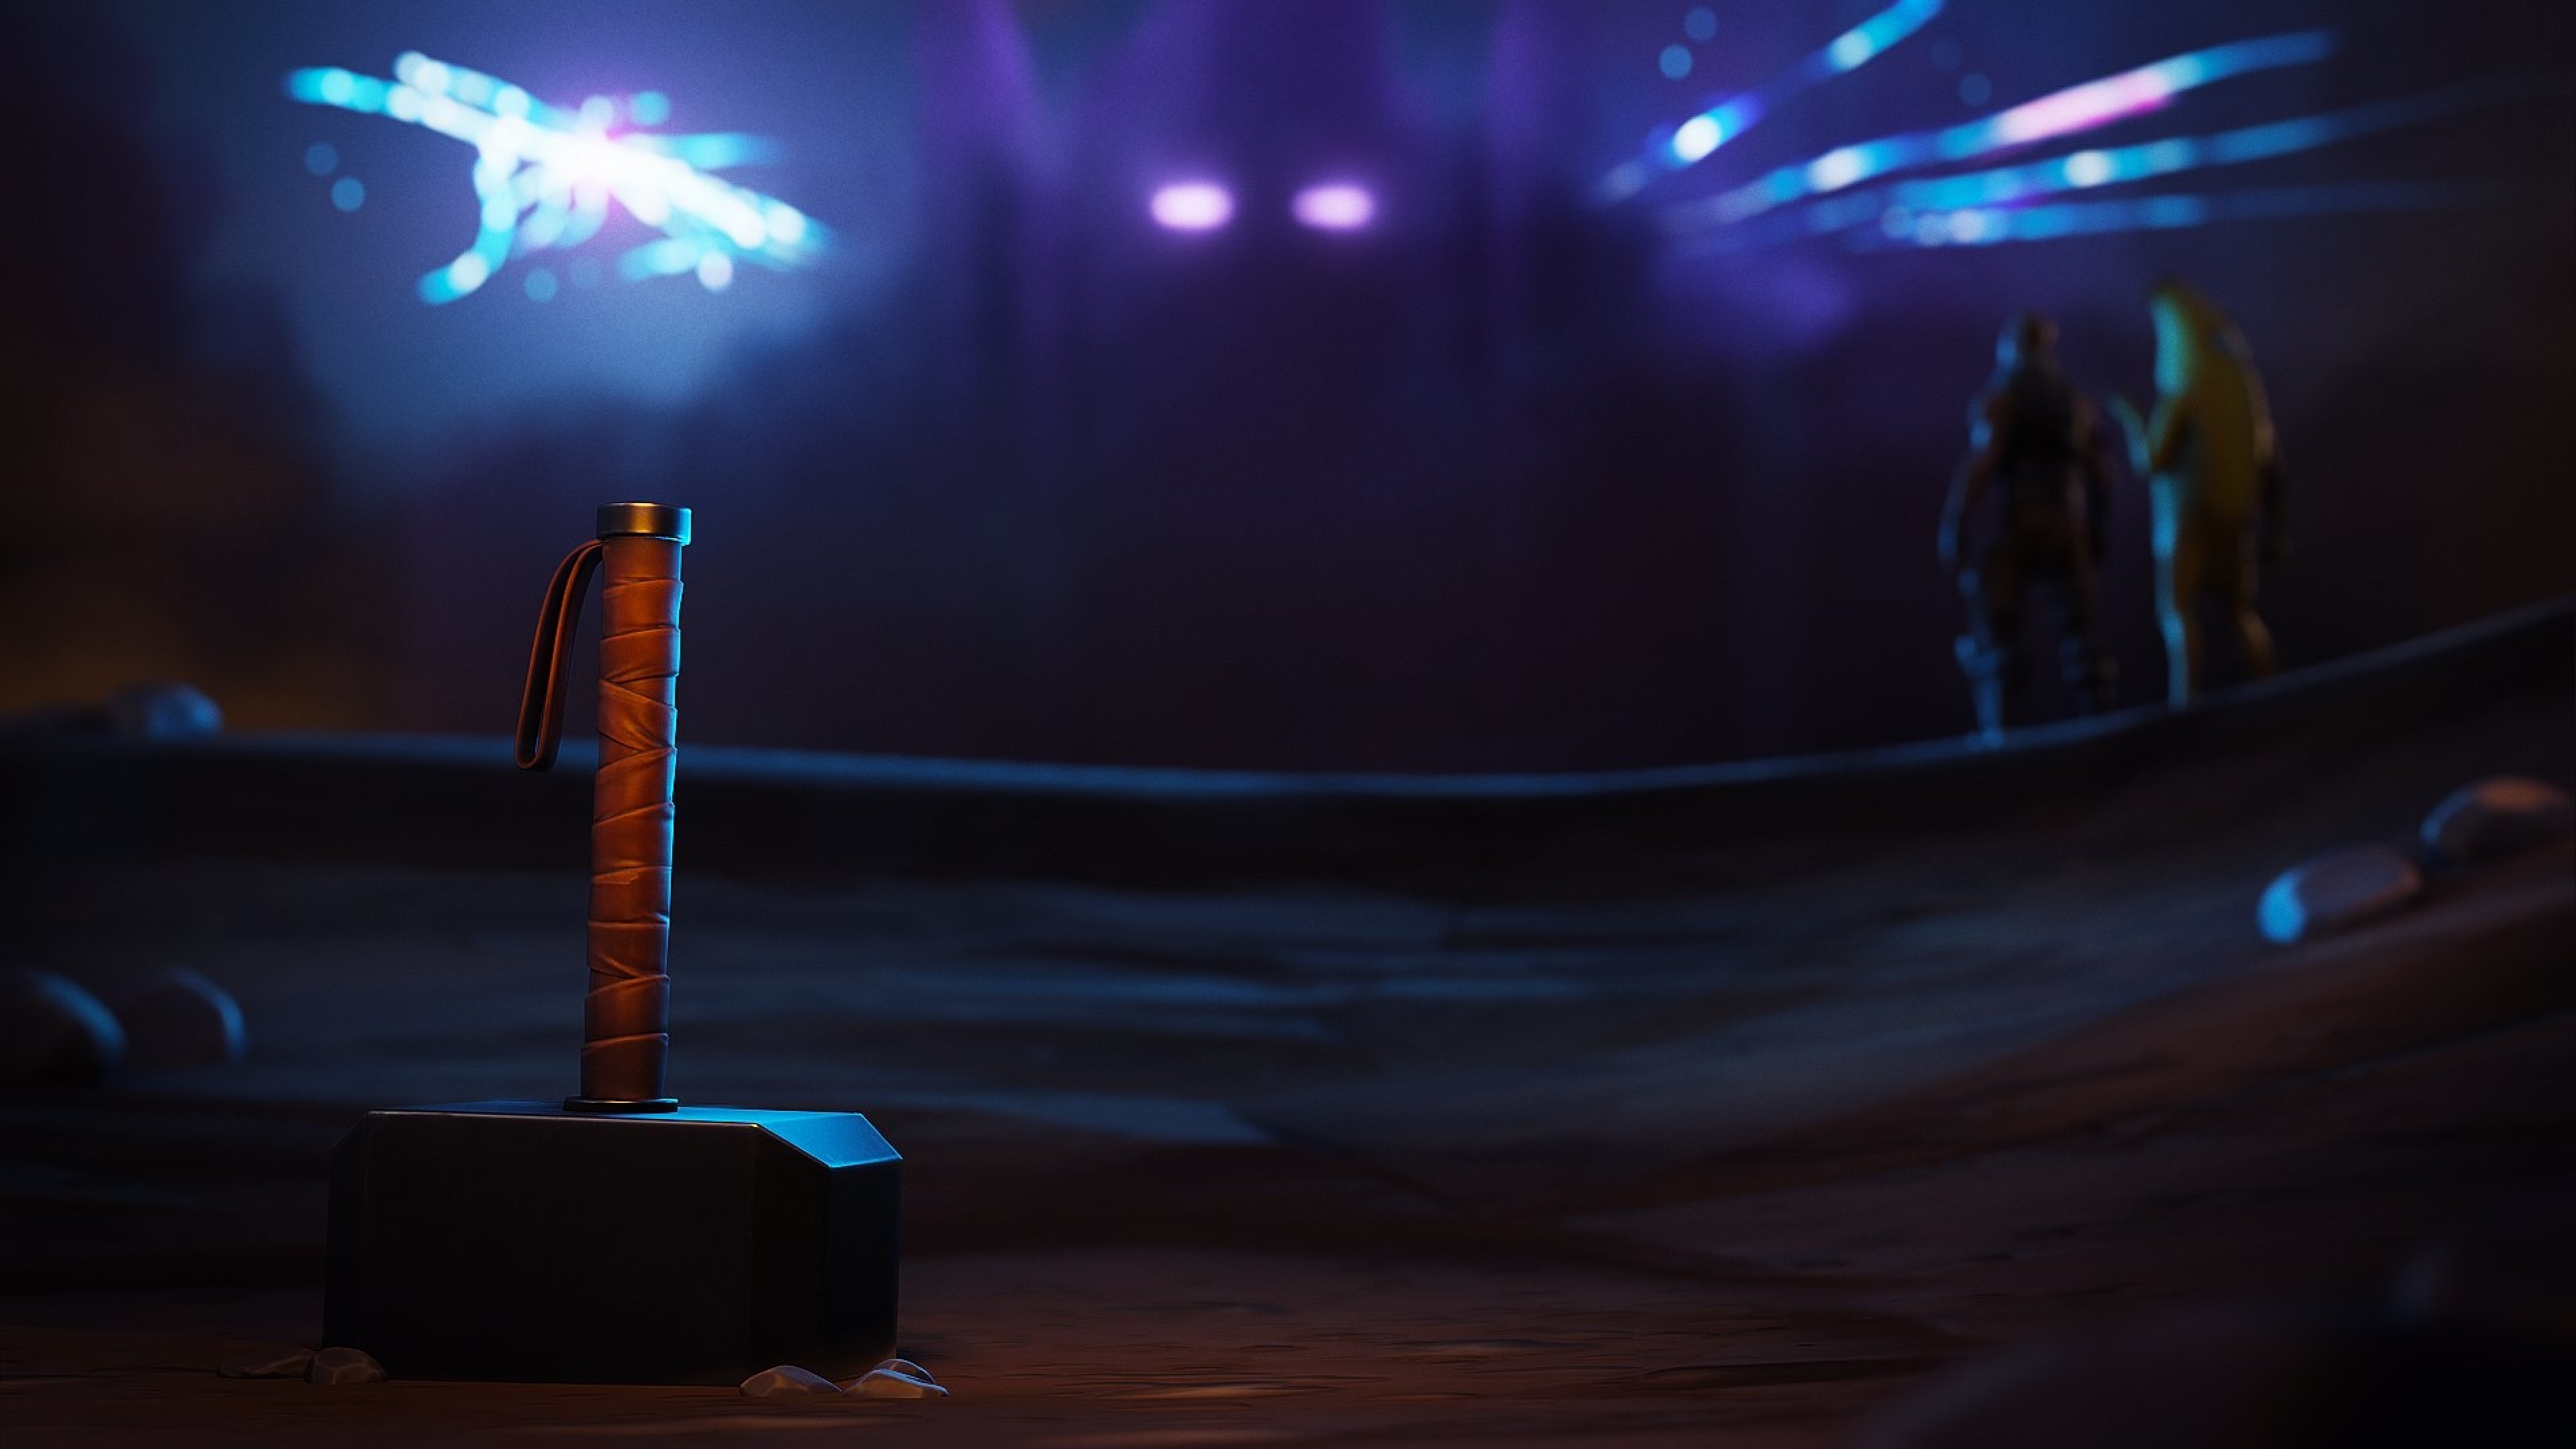 3840x2160 Thor Hammer Fortnite 4k Wallpaper Hd Games 4k Wallpapers Images Photos And Background